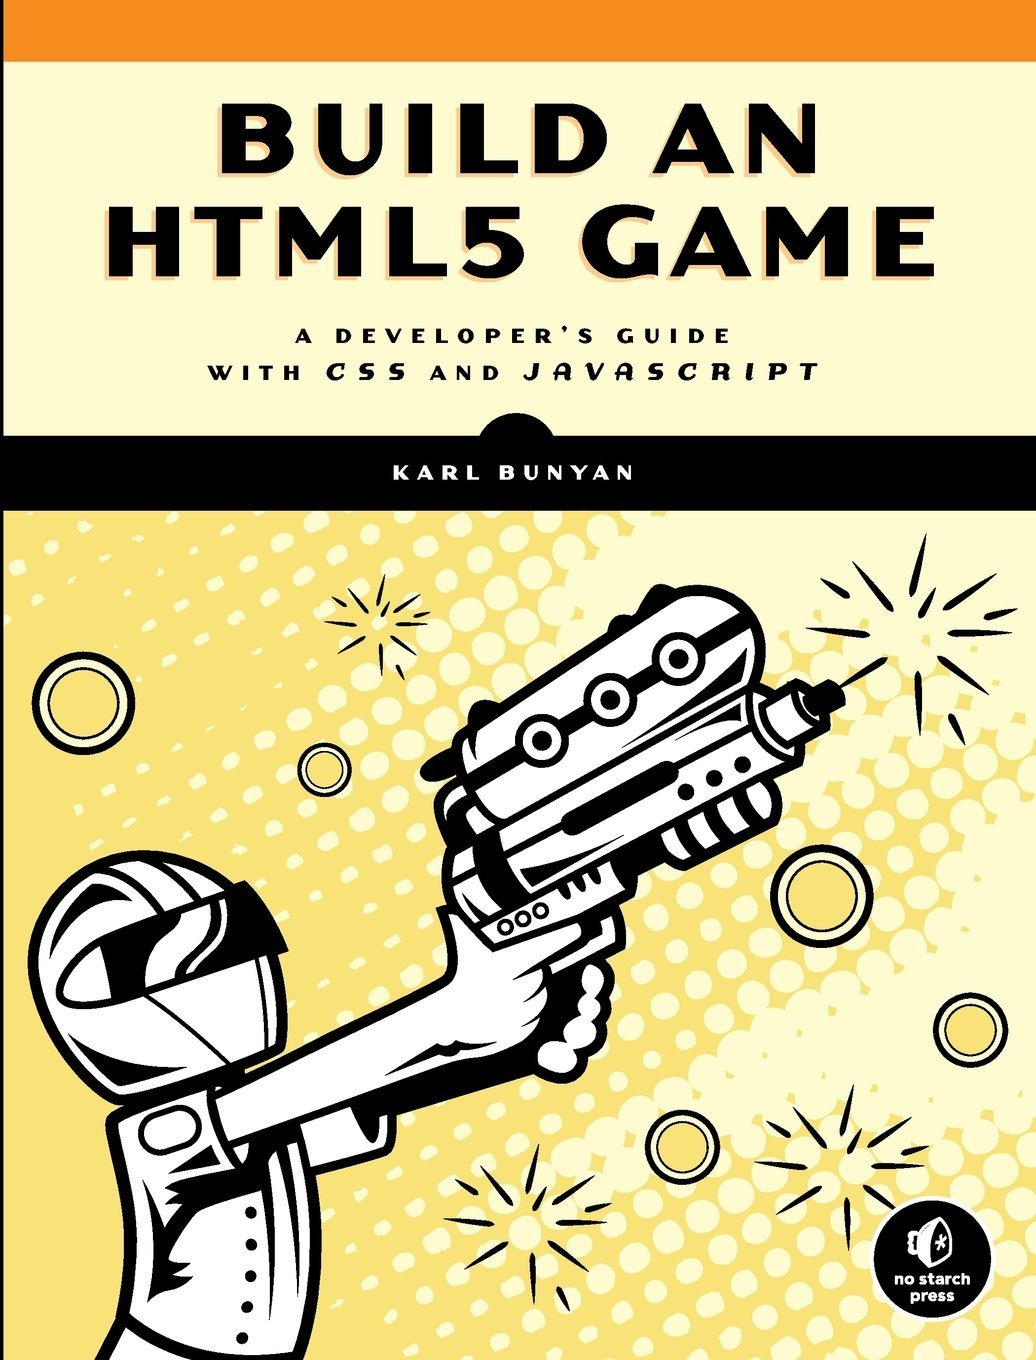 Build An HTML5 Game A Developers Guide With CSS And JavaScript Karl Bunyan 9781593275754 Amazon Books